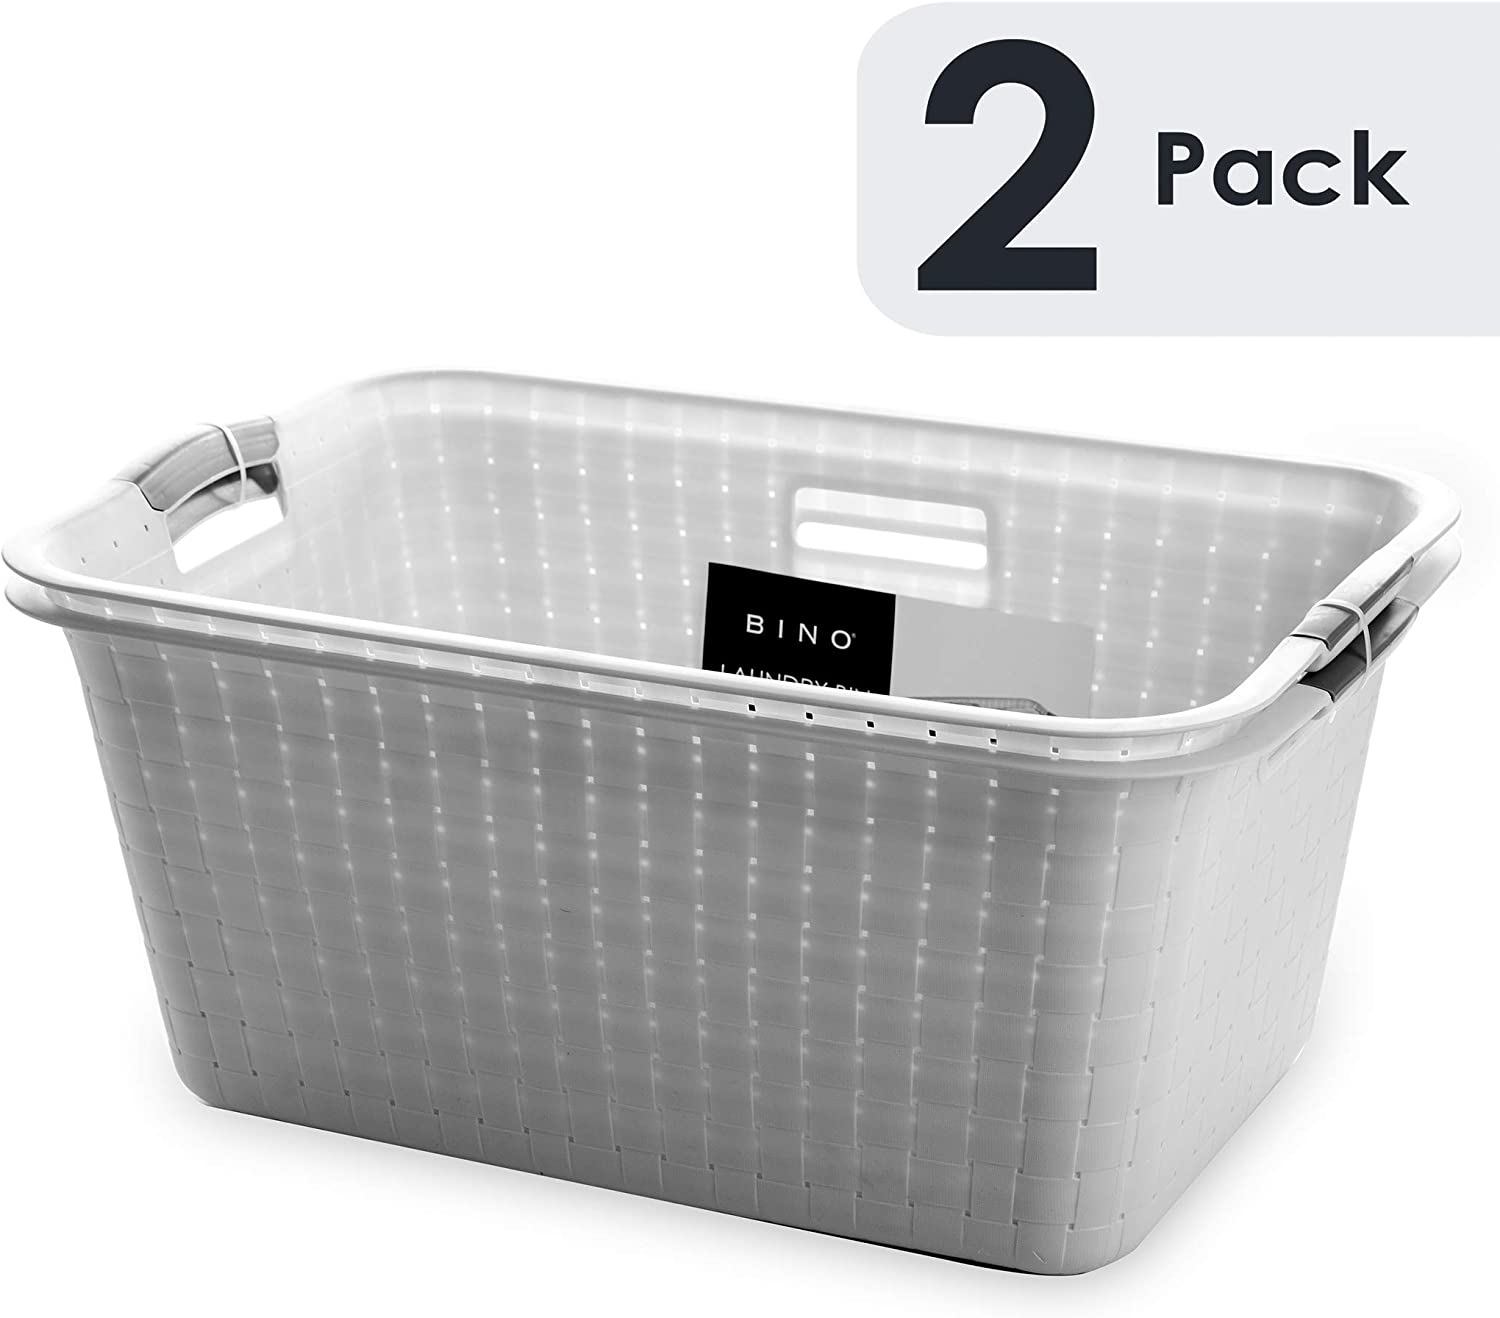 BINO Woven Plastic Laundry Hamper Storage Basket, Light Grey(2 pack)